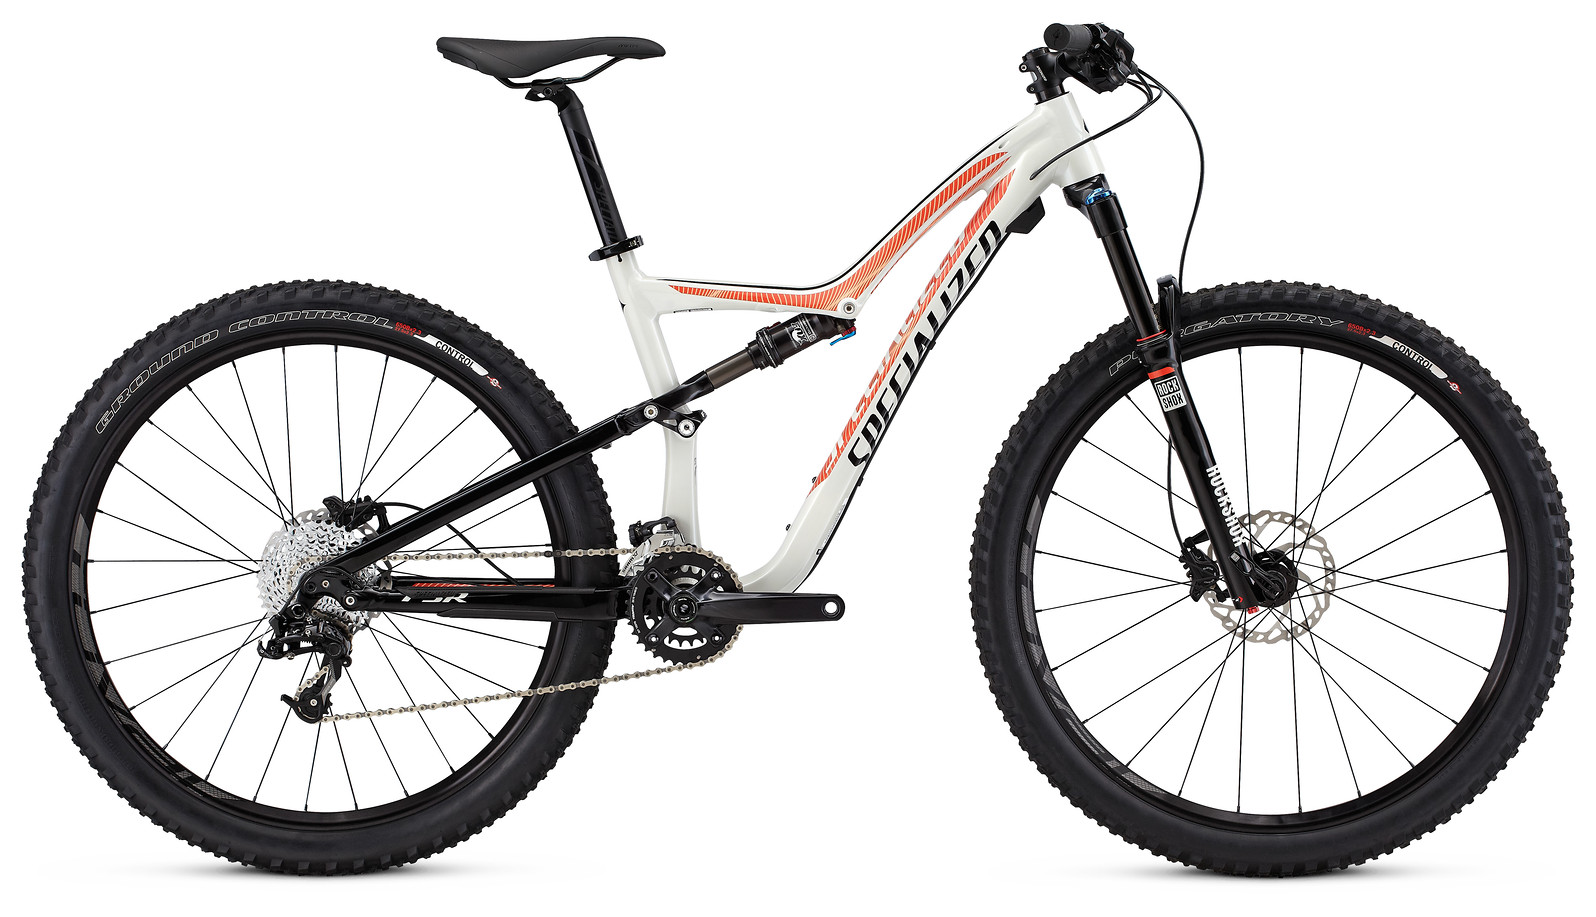 2016 Specialized Rumor Comp 650b Bike 95316-50_RUMOR_COMP-650B_DRTYWHT-BLK-CRL